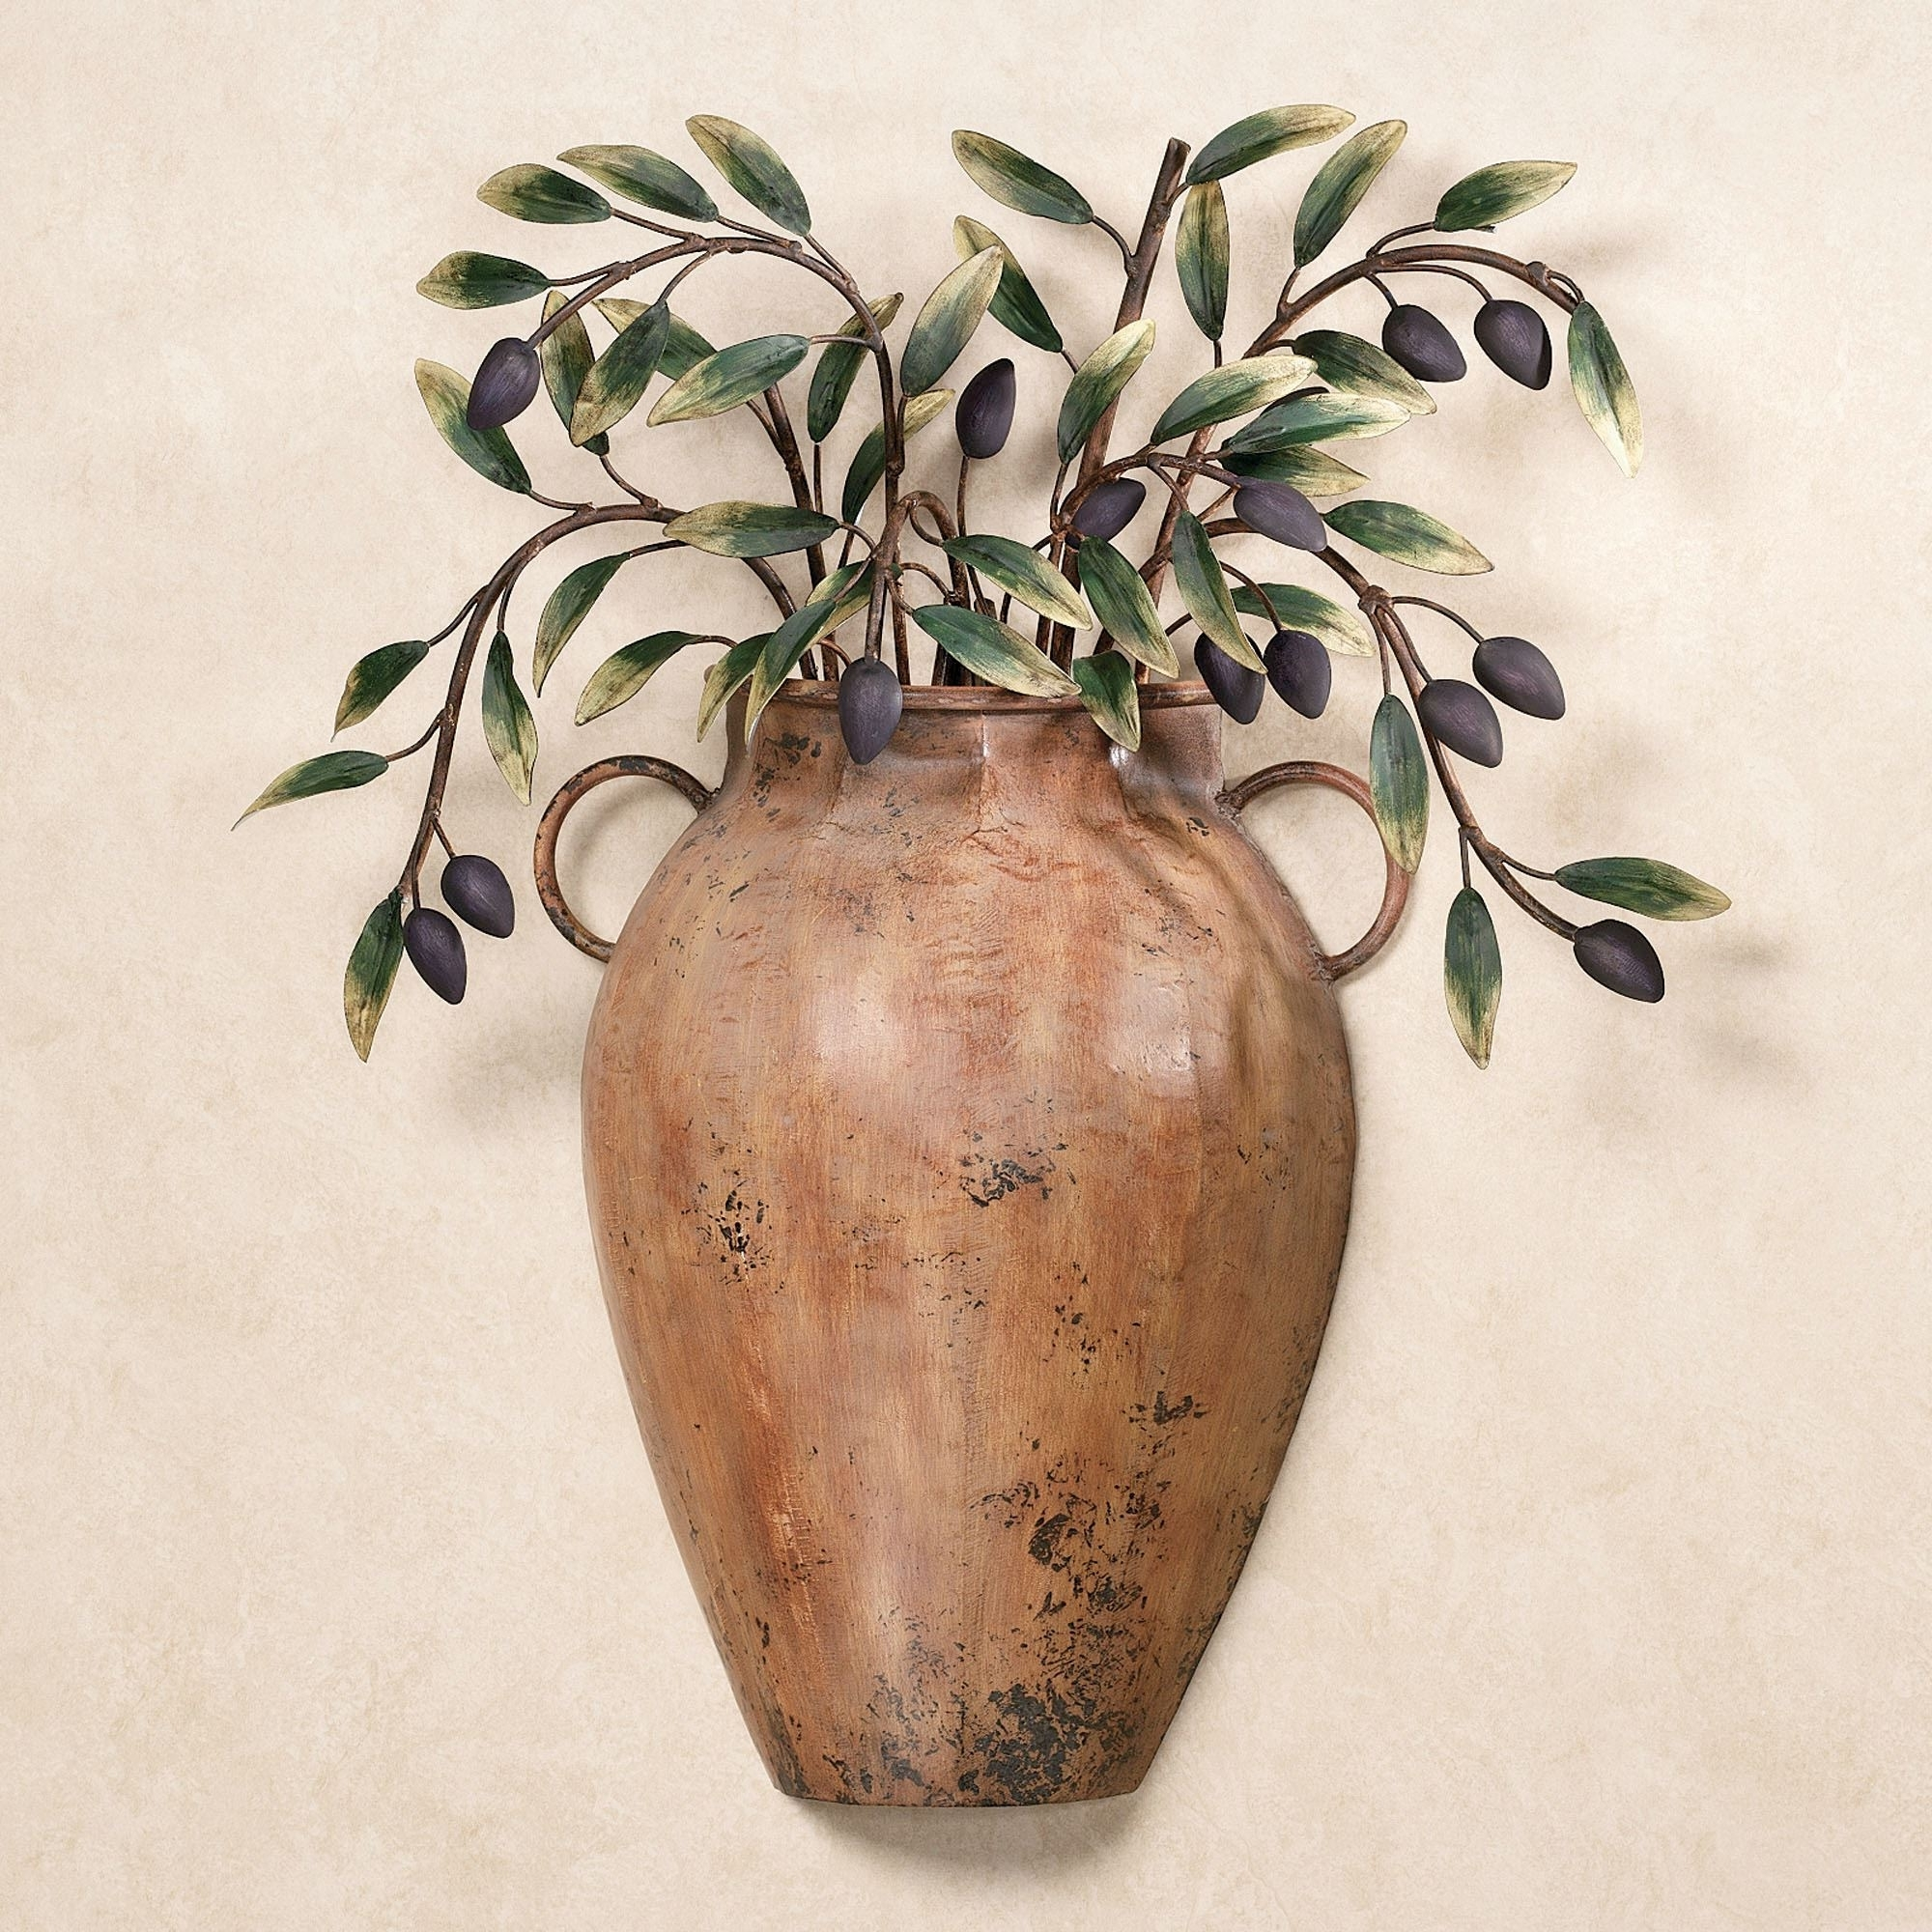 Valetta Vaso Con Olives Metal Wall Sculpture Within Most Up To Date Kitchen Metal Wall Art (View 6 of 20)